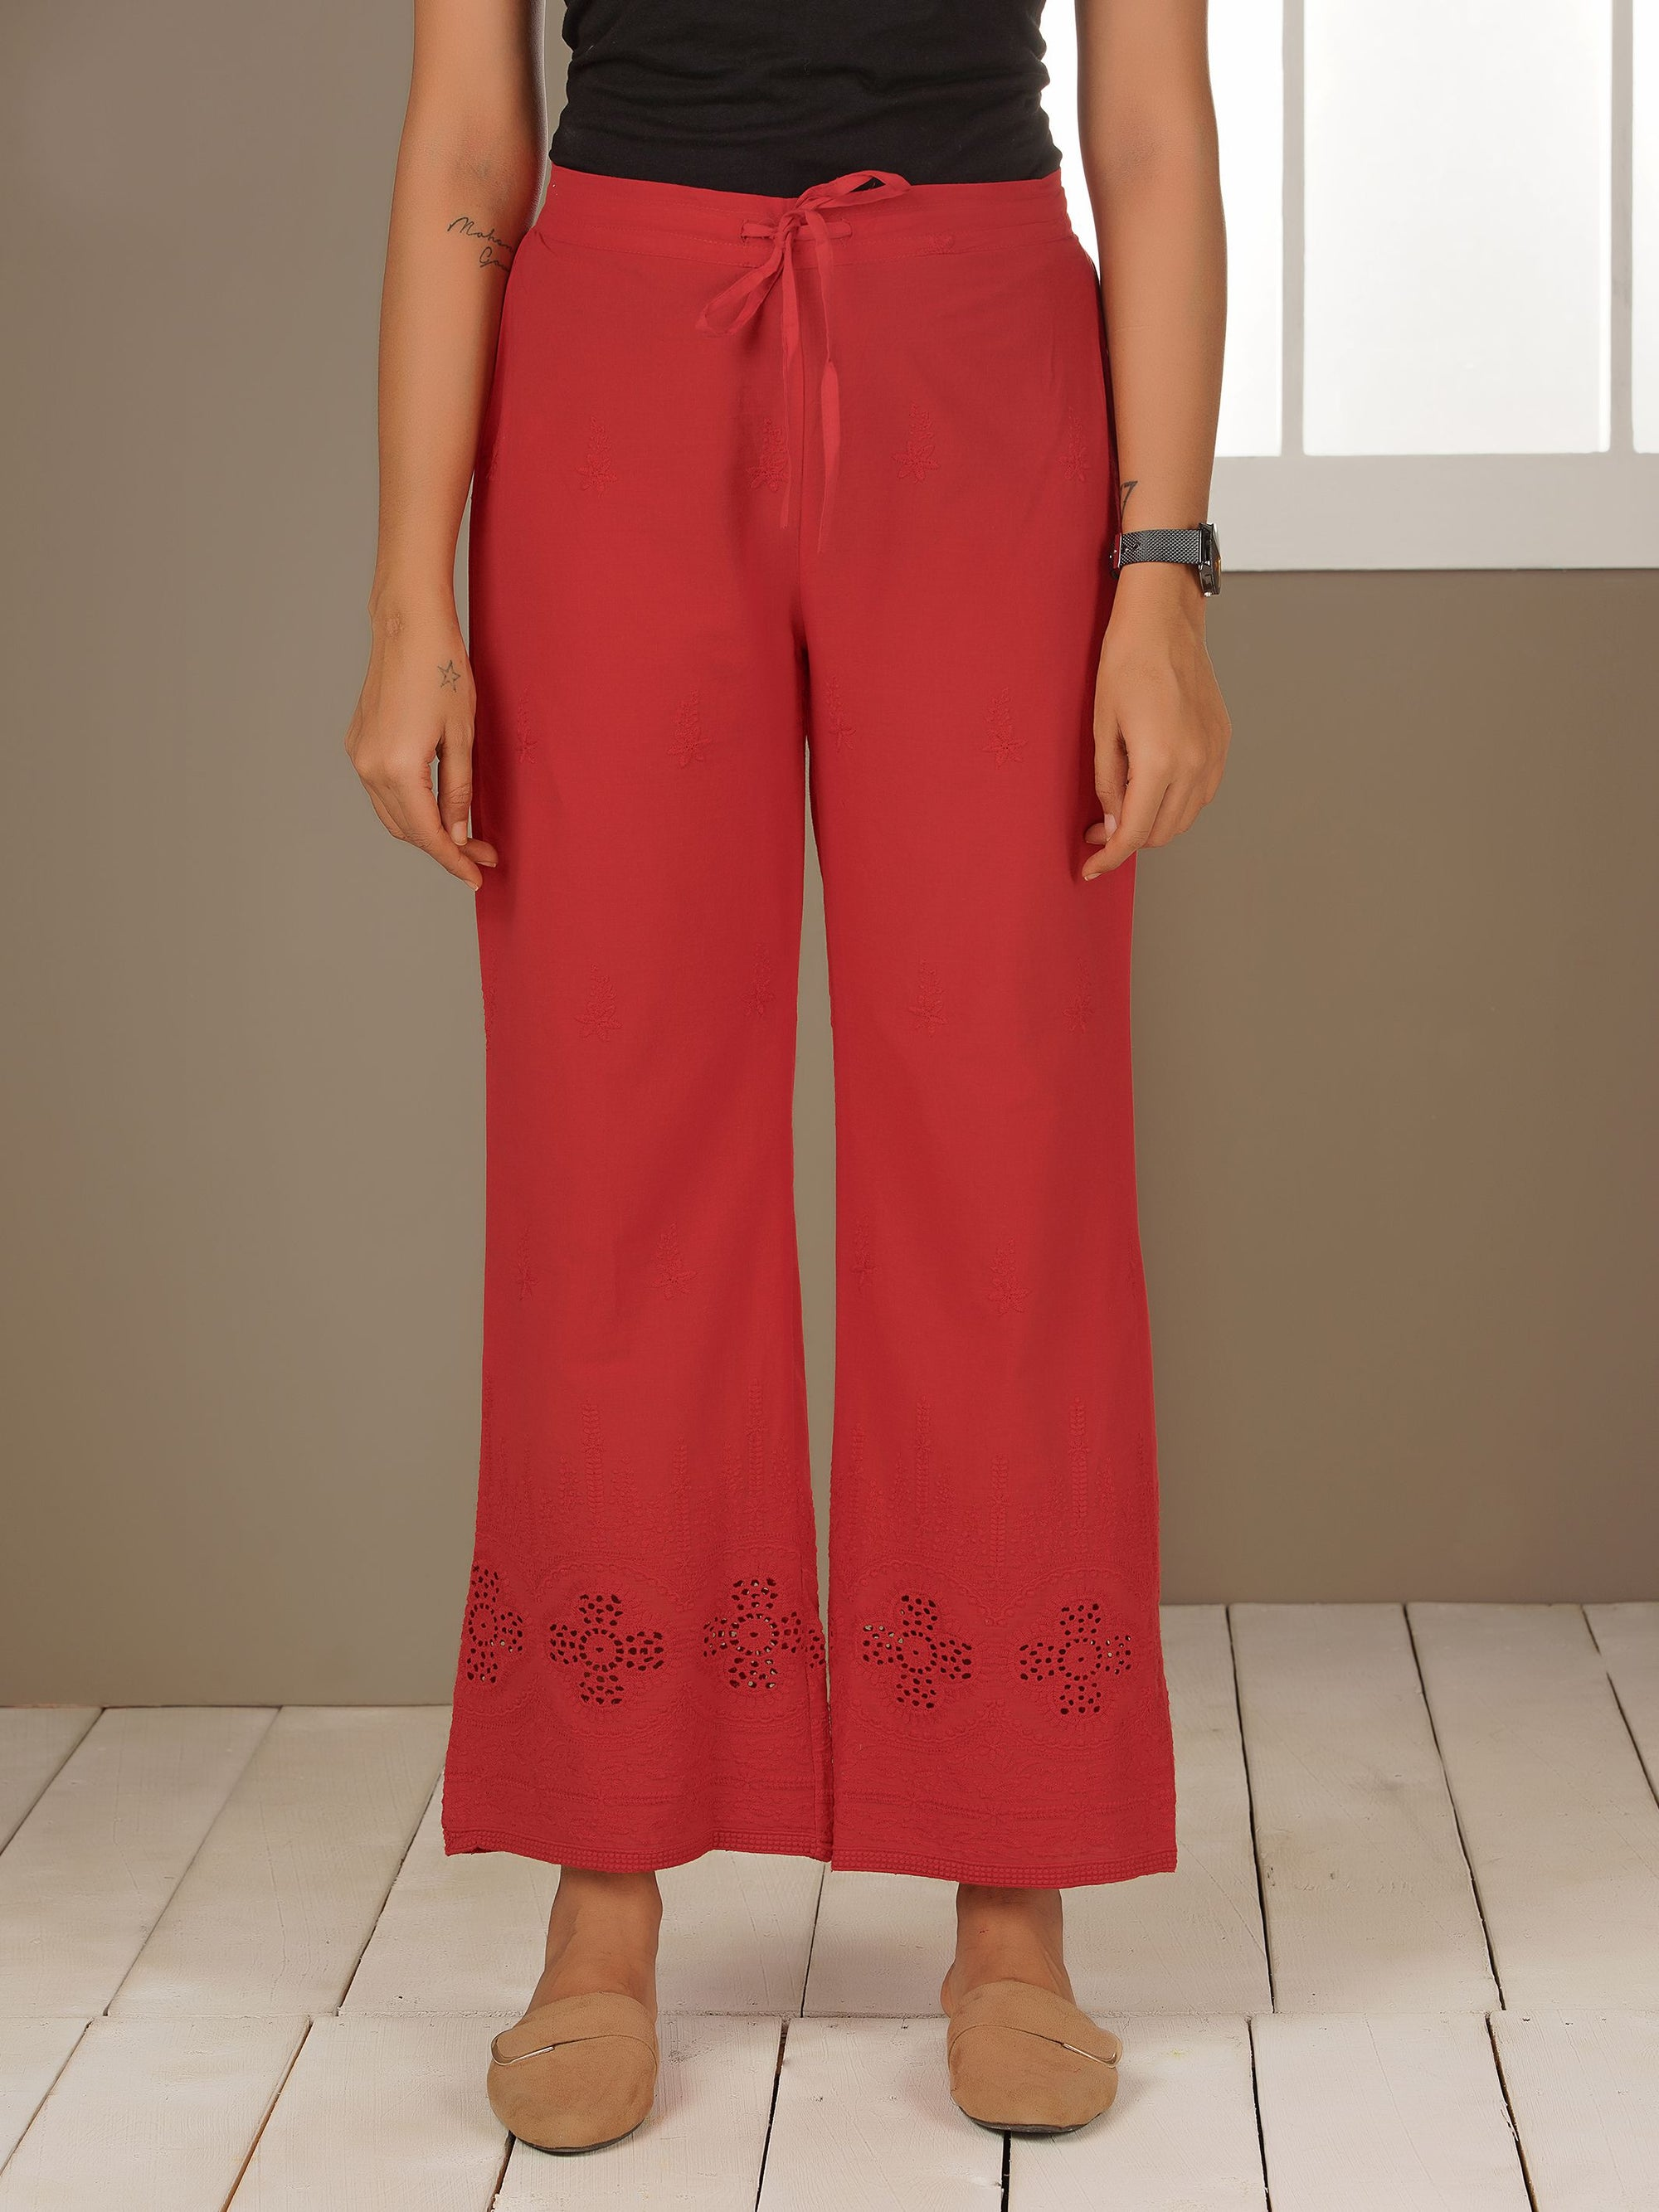 Floral Embroidered Schiffli Palazzo Pants - Red